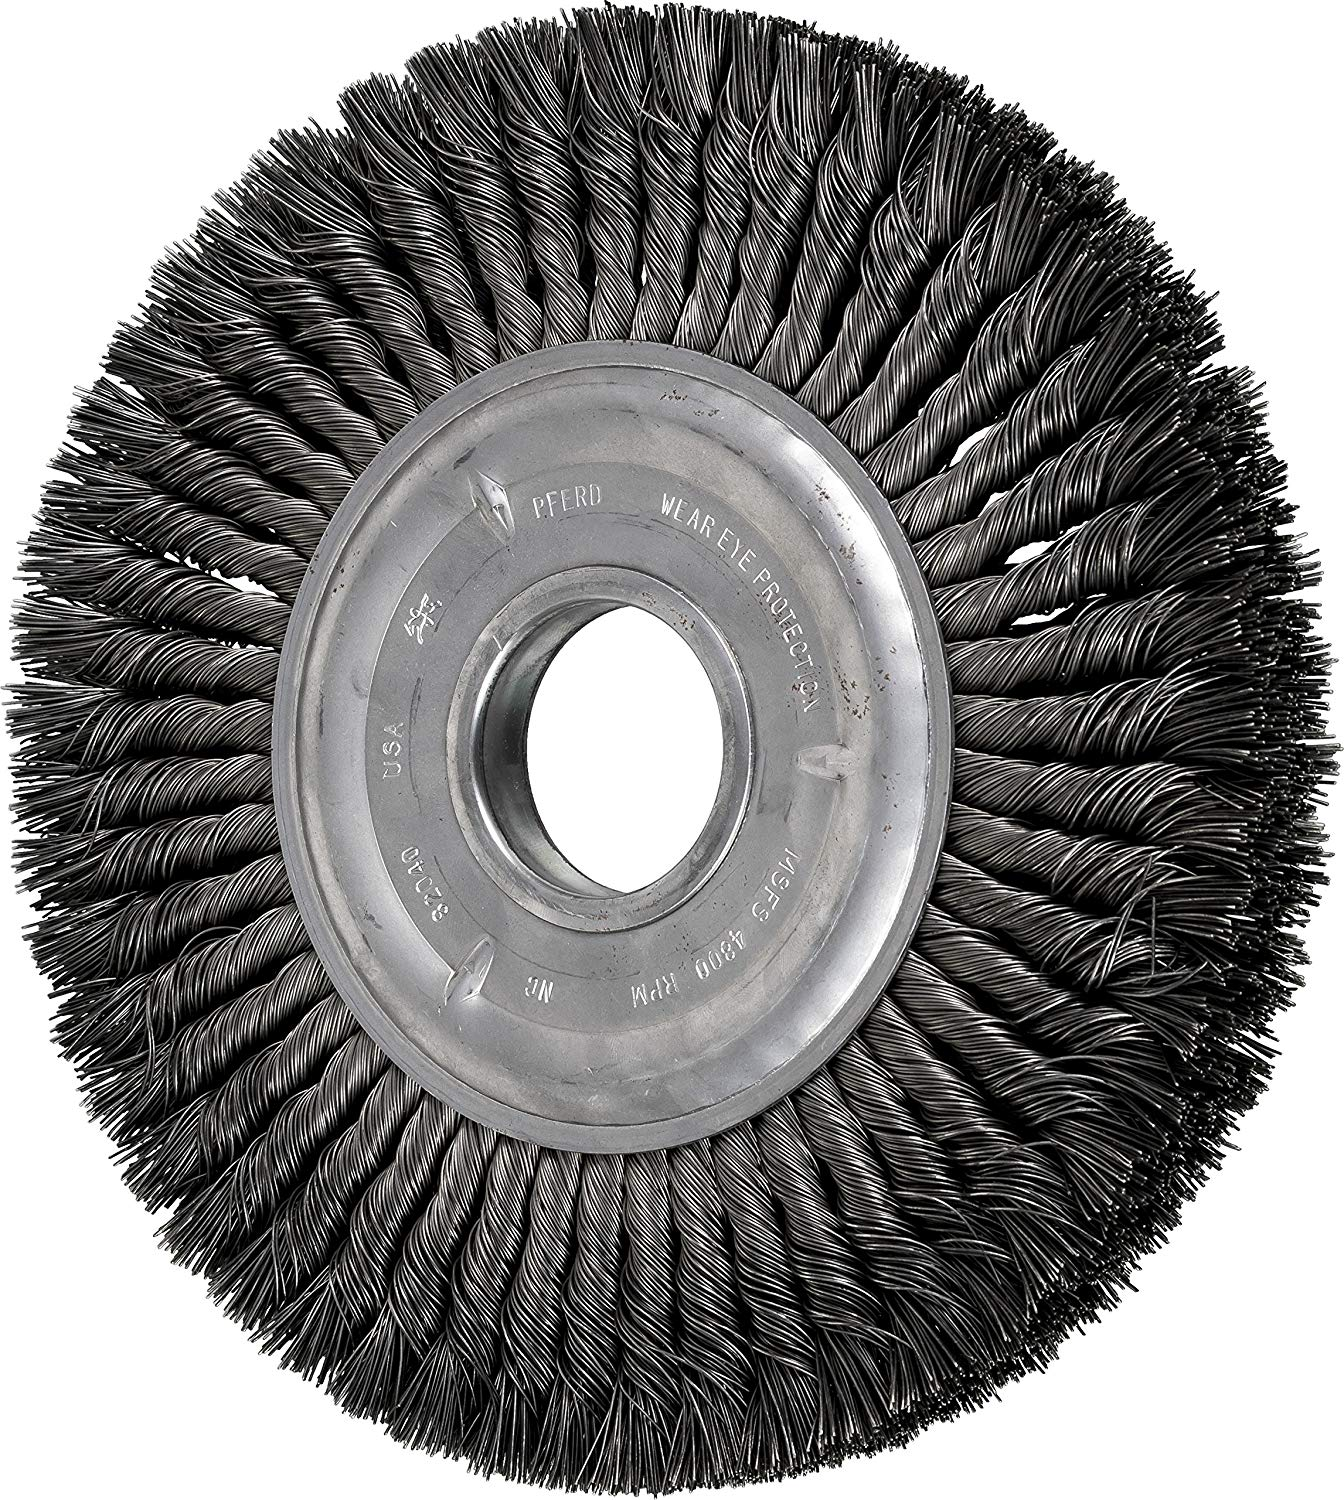 Carbon Steel Wire 1-1//2 Diameter 3//8 Arbor Hole Pack of 10 PFERD 81517 Crimped Wheel Wire Brush 0.012 Wire Size 20000 RPM